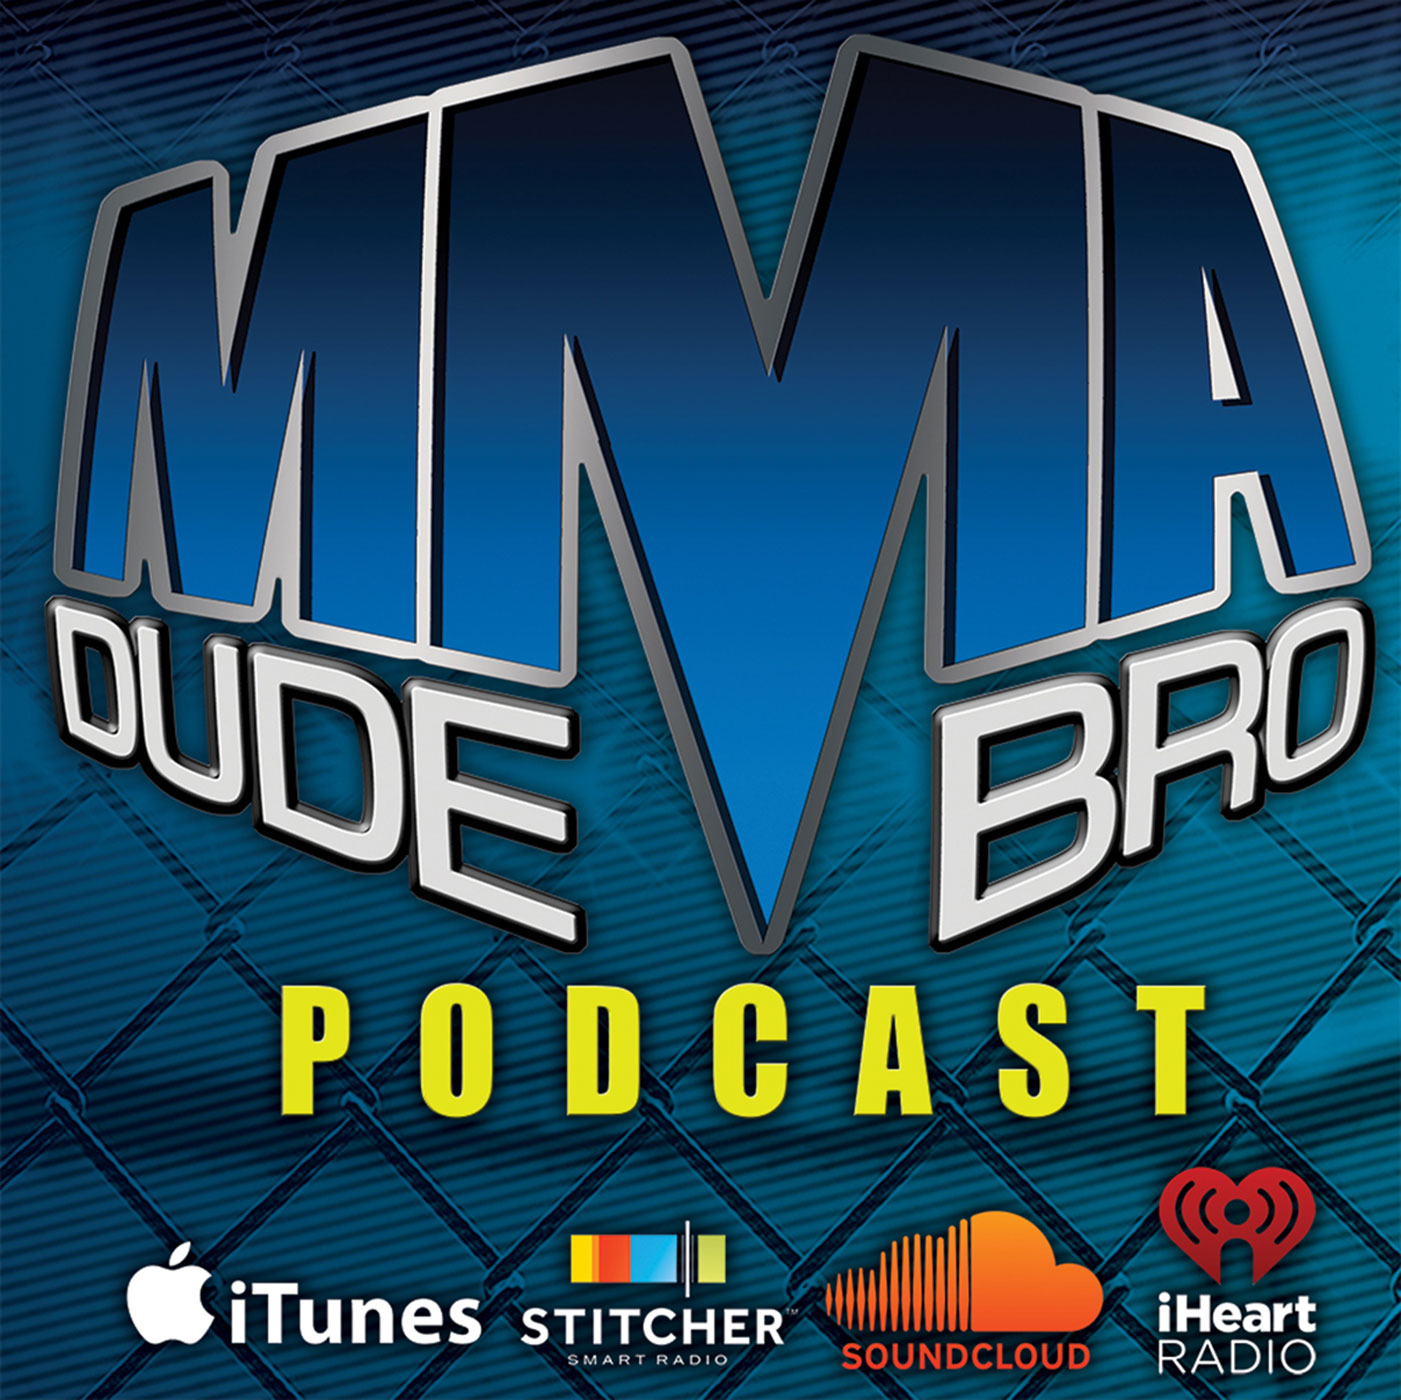 MMA Dude Bro - Episode 116 (with guest TJ DeSantis)